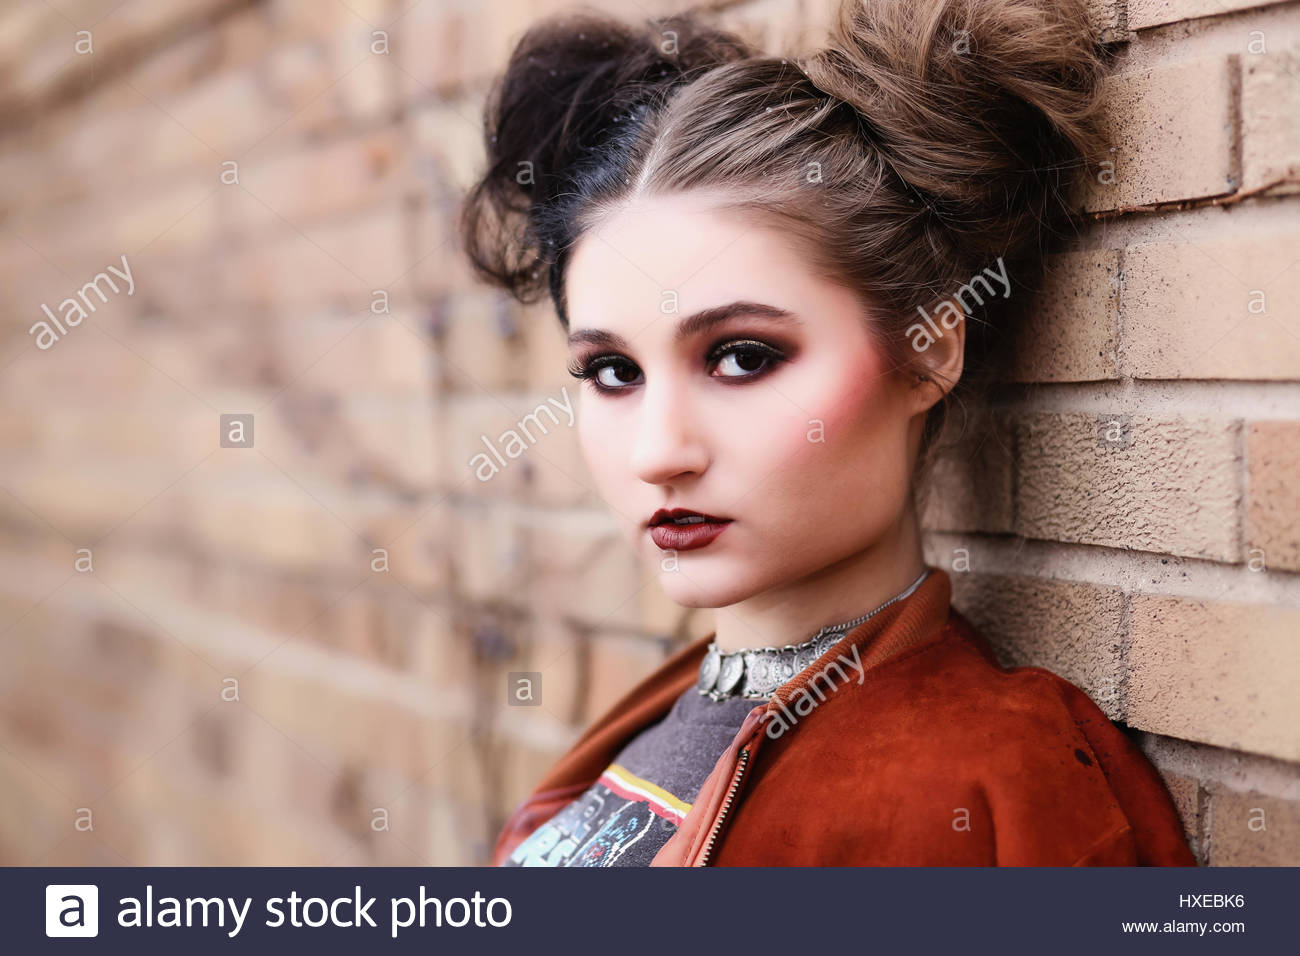 Portrait of a young woman leaning on a brick wall - Stock Image